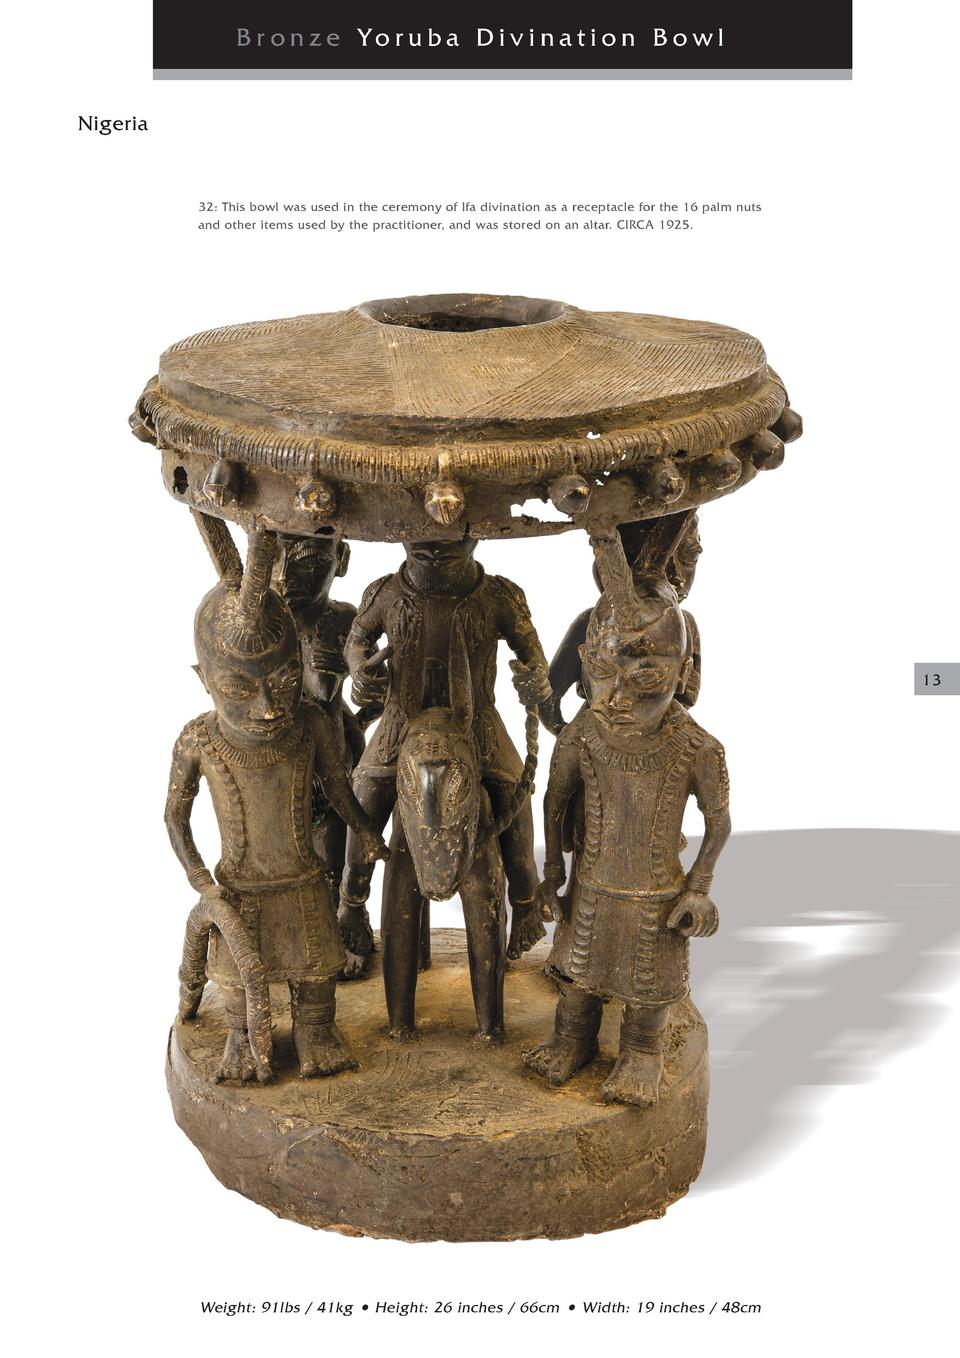 Br onze Yoruba Divination Bowl Nigeria  32  This bowl was used in the ceremony of Ifa divination as a receptacle for the 1...